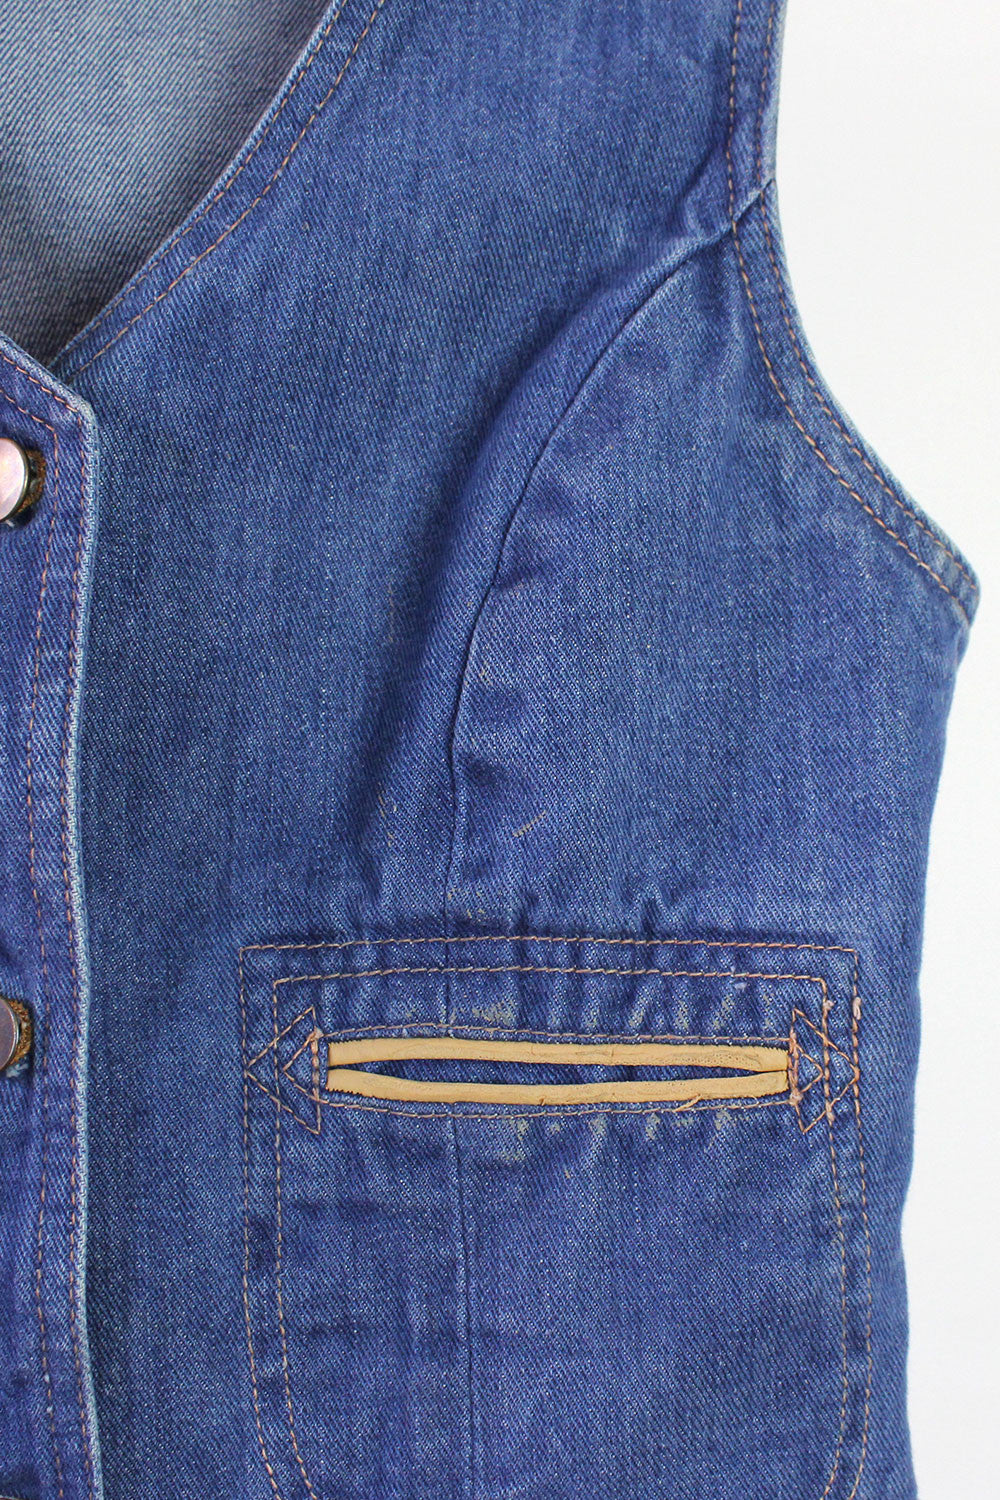 70s Crop Denim Vest S